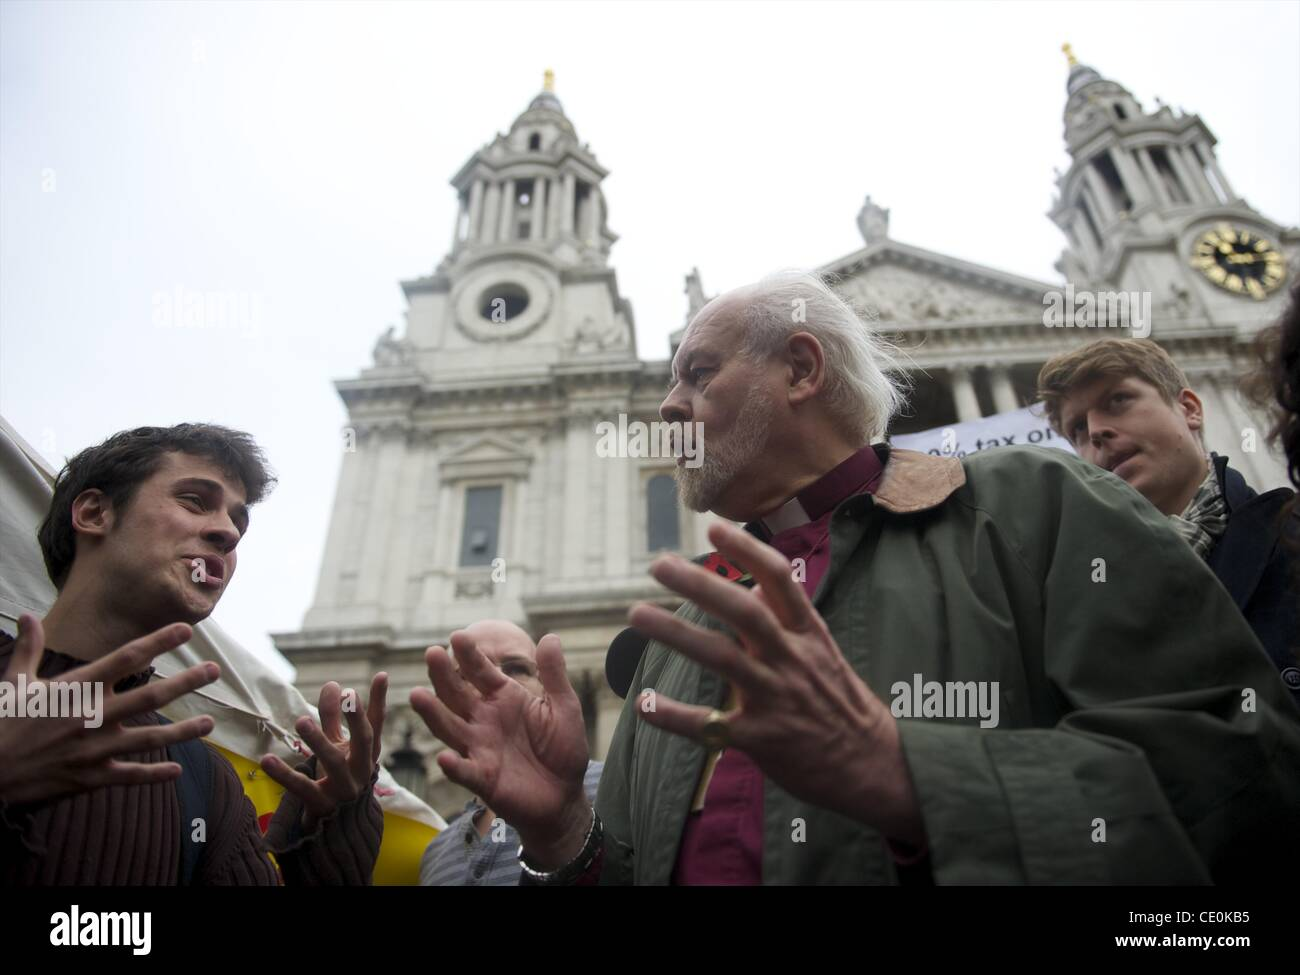 Oct. 30, 2011 - London, England, UK - Bishop of London RICHARD CHARTRES speaks to protestors outside St. Paul's - Stock Image